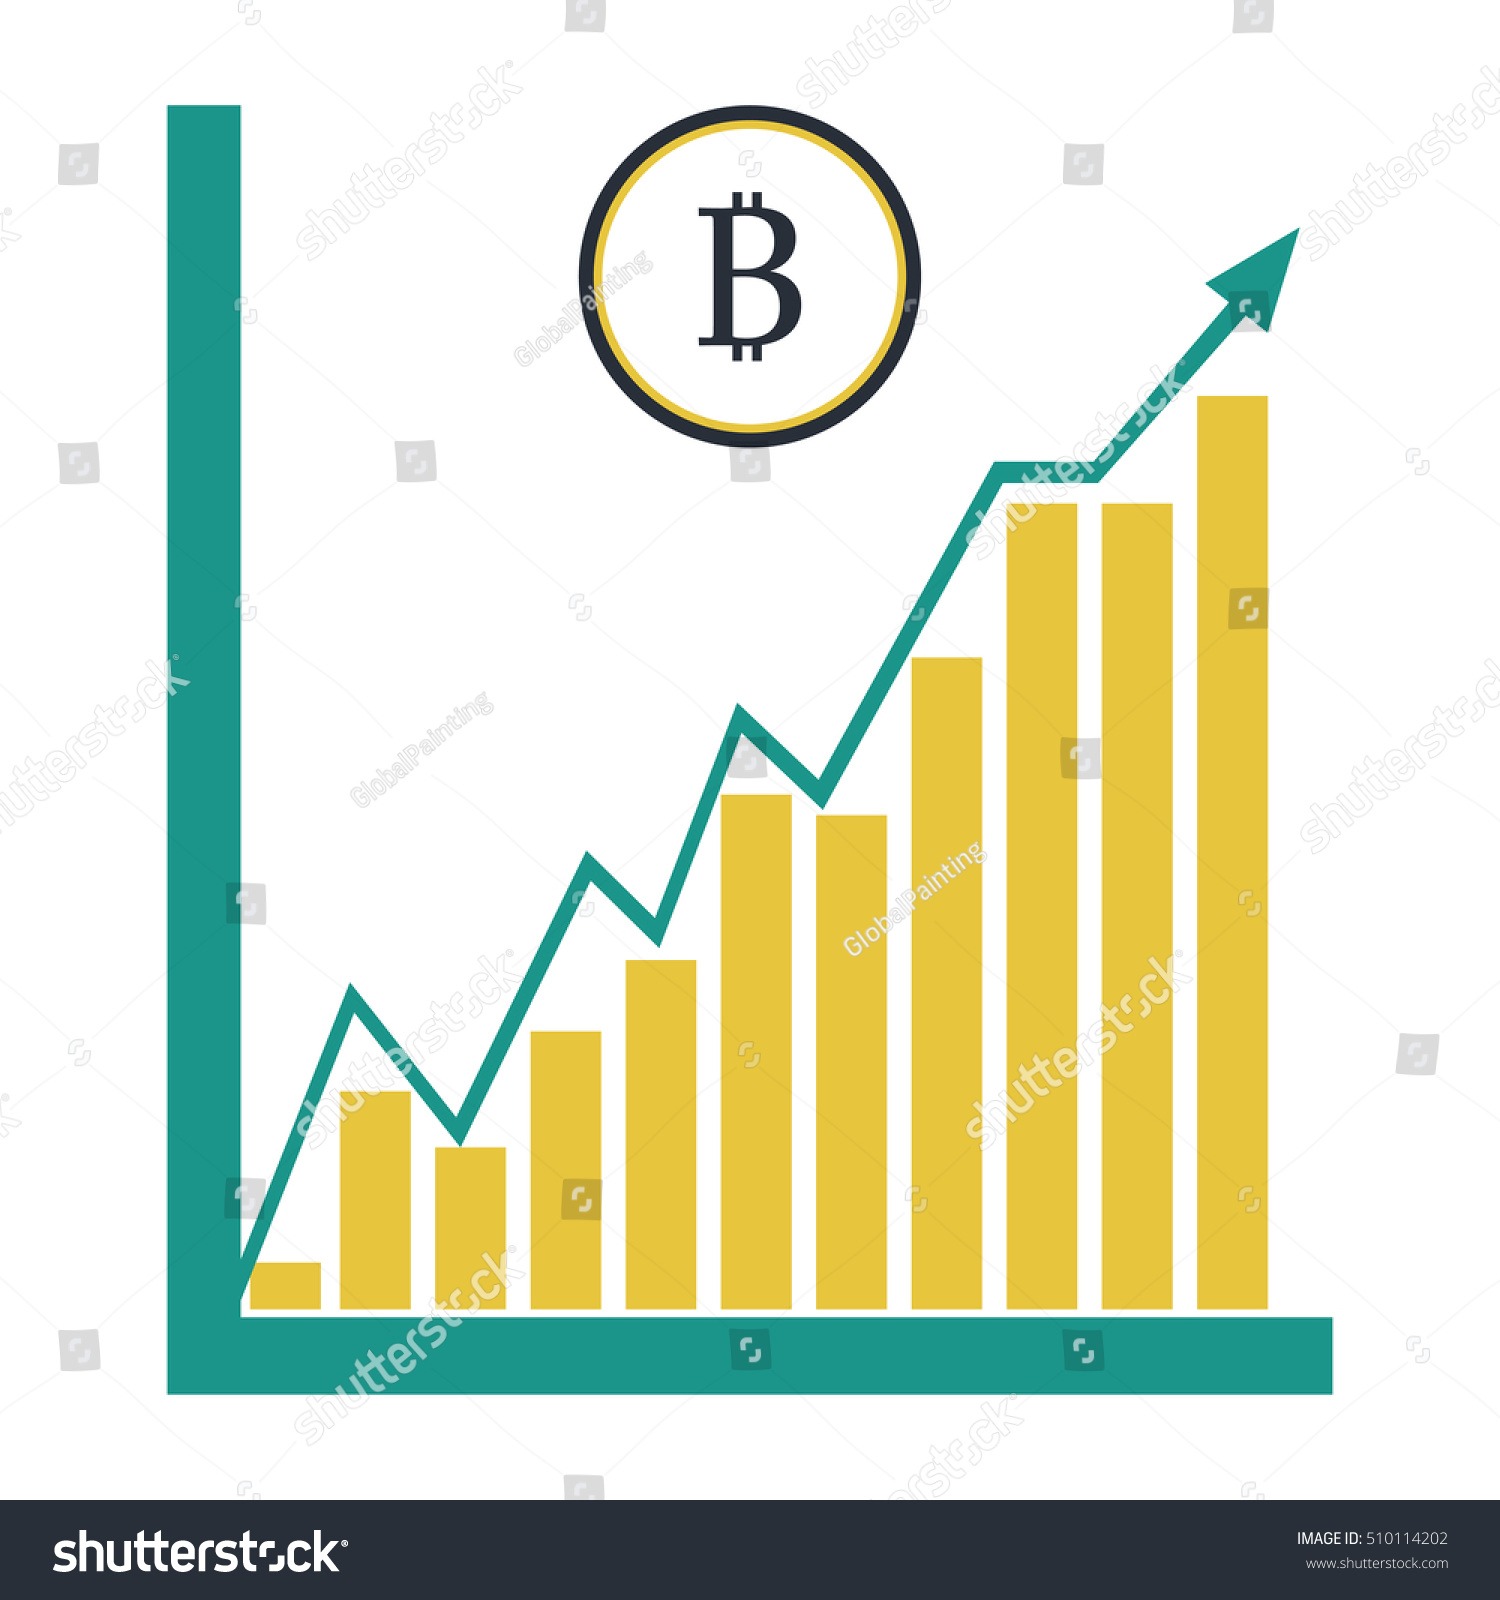 Bitcoin, the course is growing 45